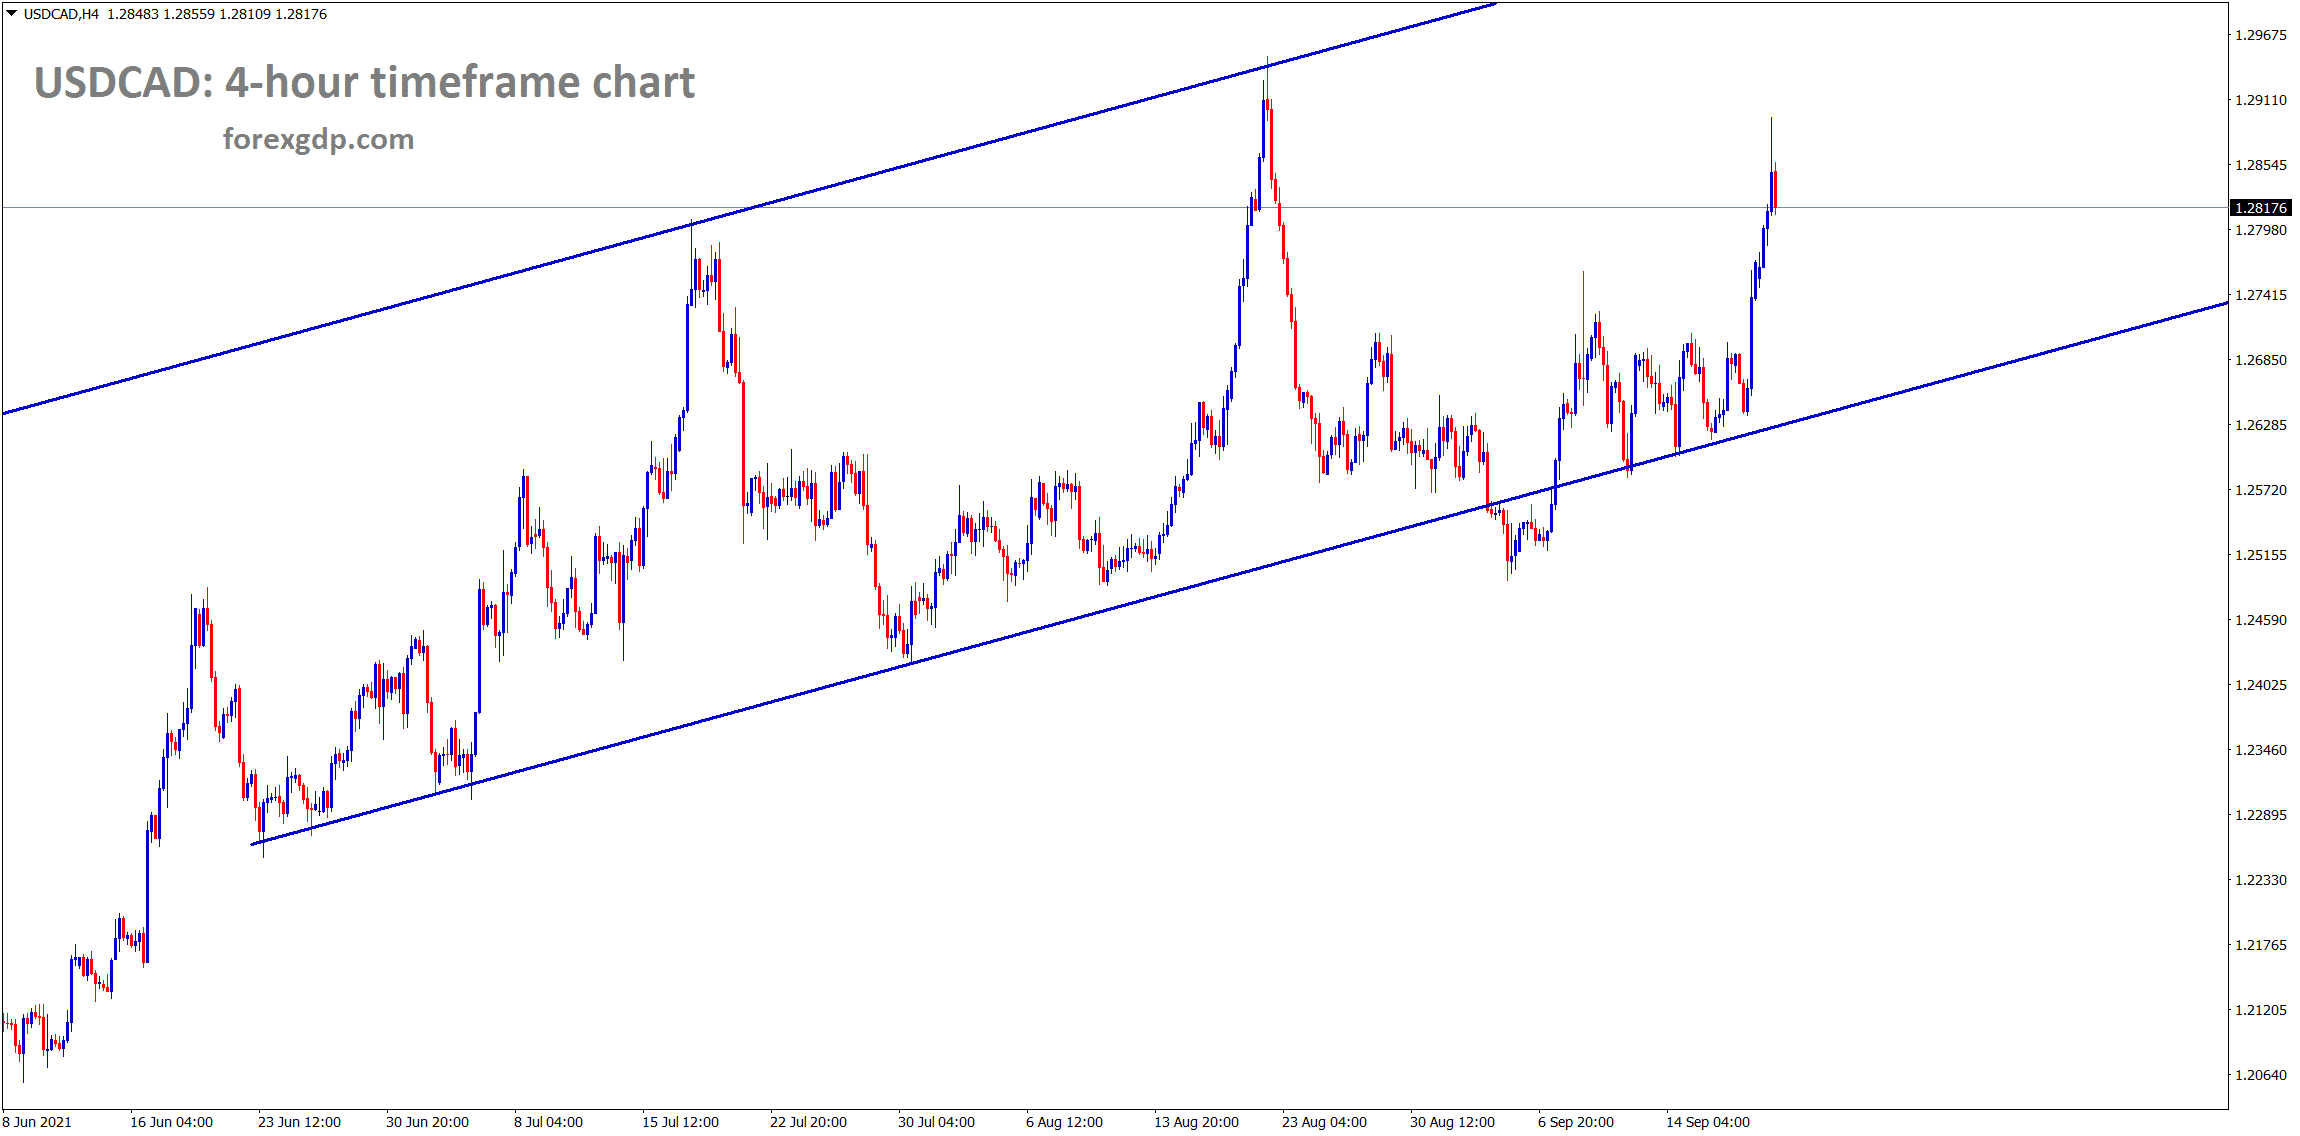 USDCAD is moving in an uptrend channel line